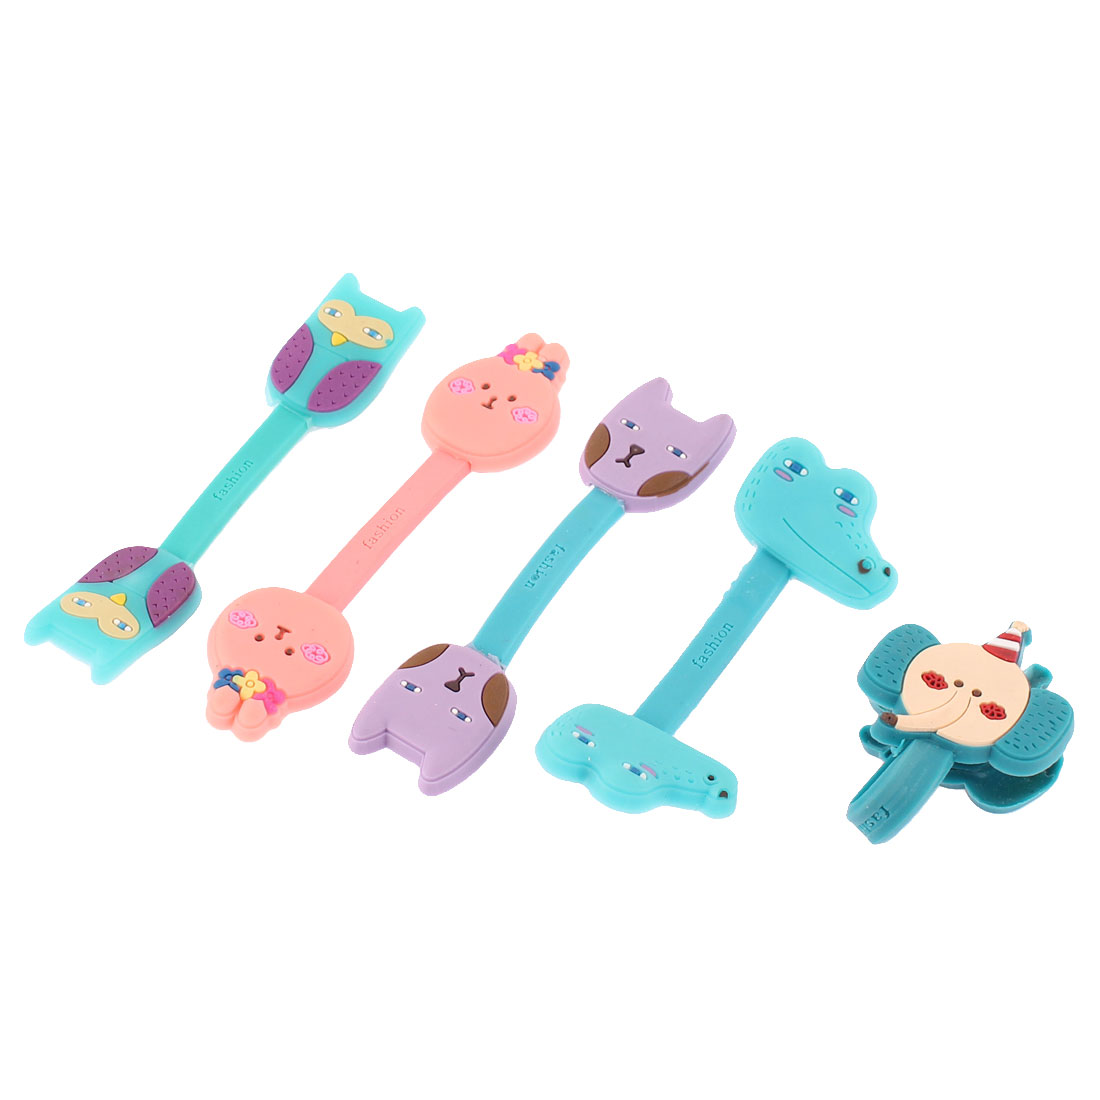 Earphone Silicone Cartoon Style Wire Organizer Cord Winder Cable Tidy